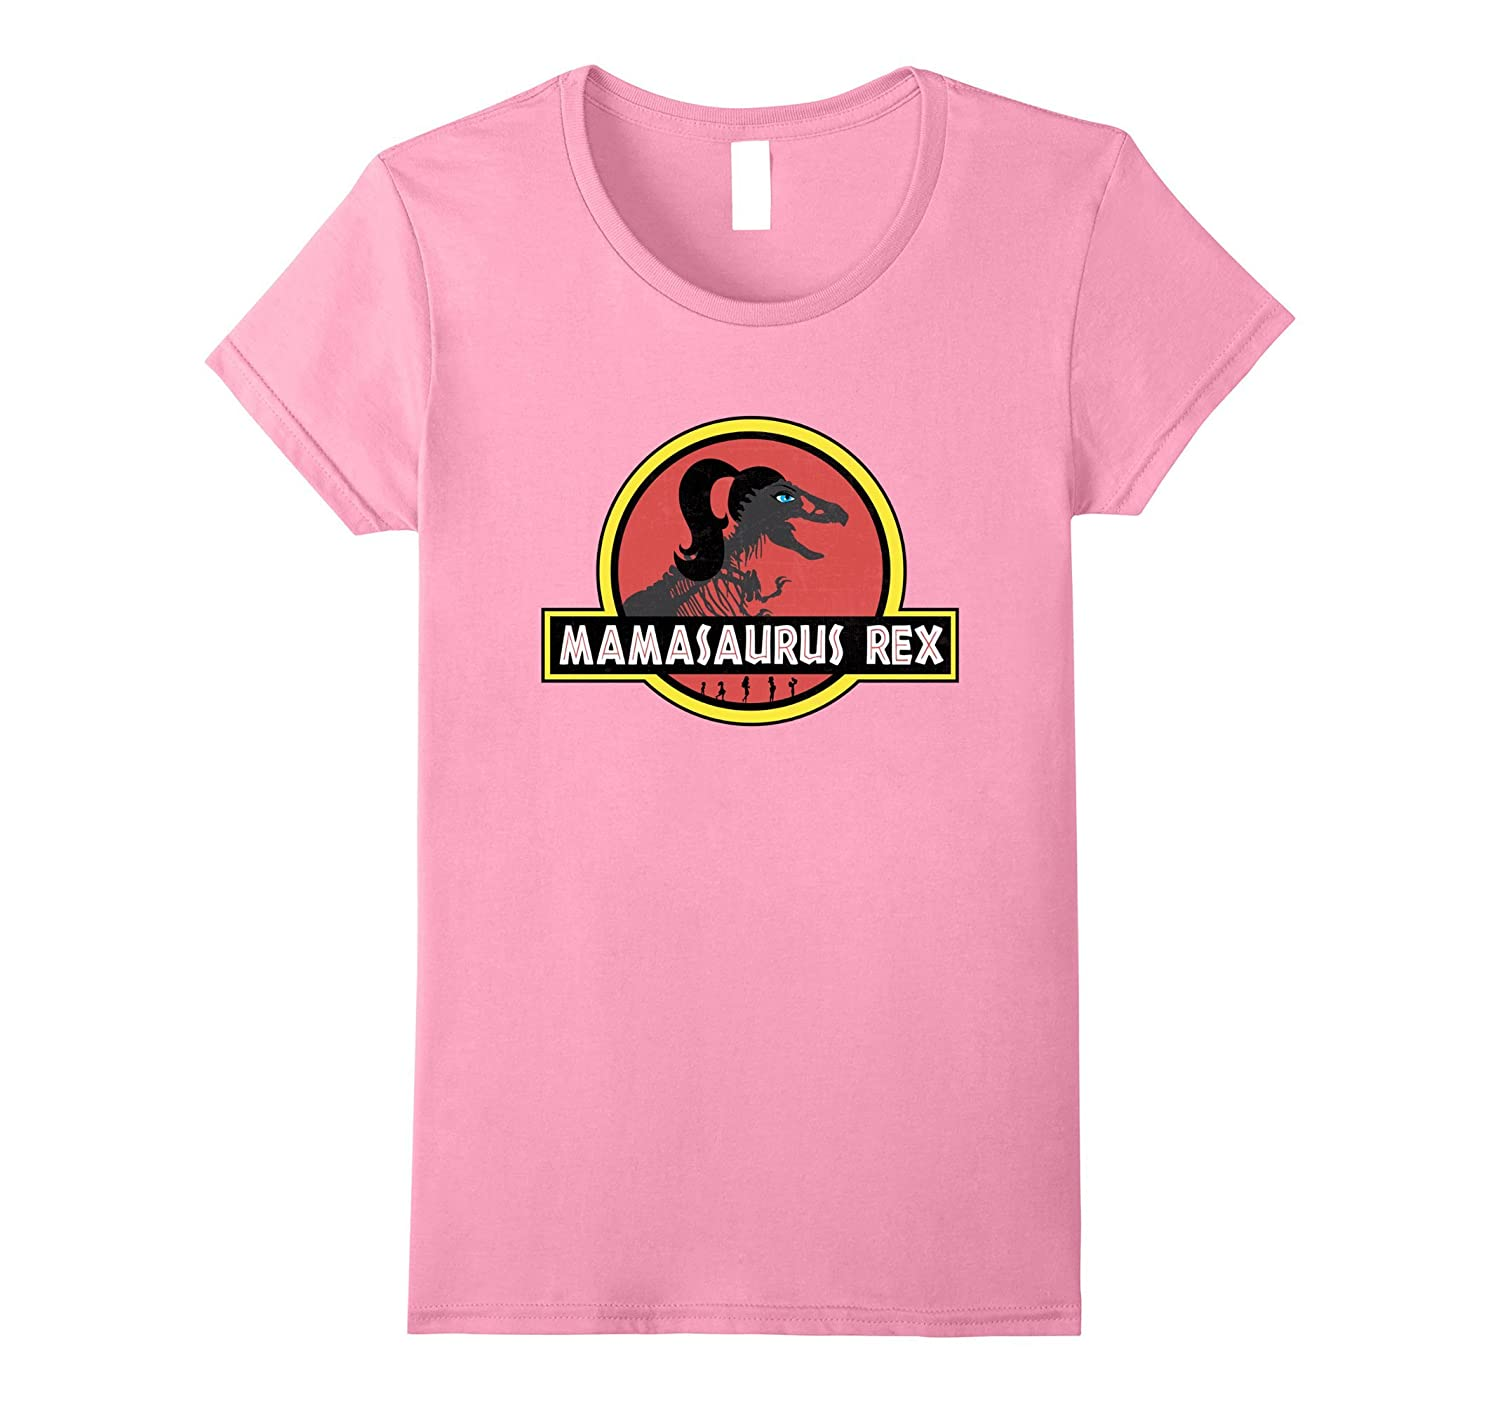 Funny Mamasaurus Rex Lovely Graphic T-Shirt for Mother's Day